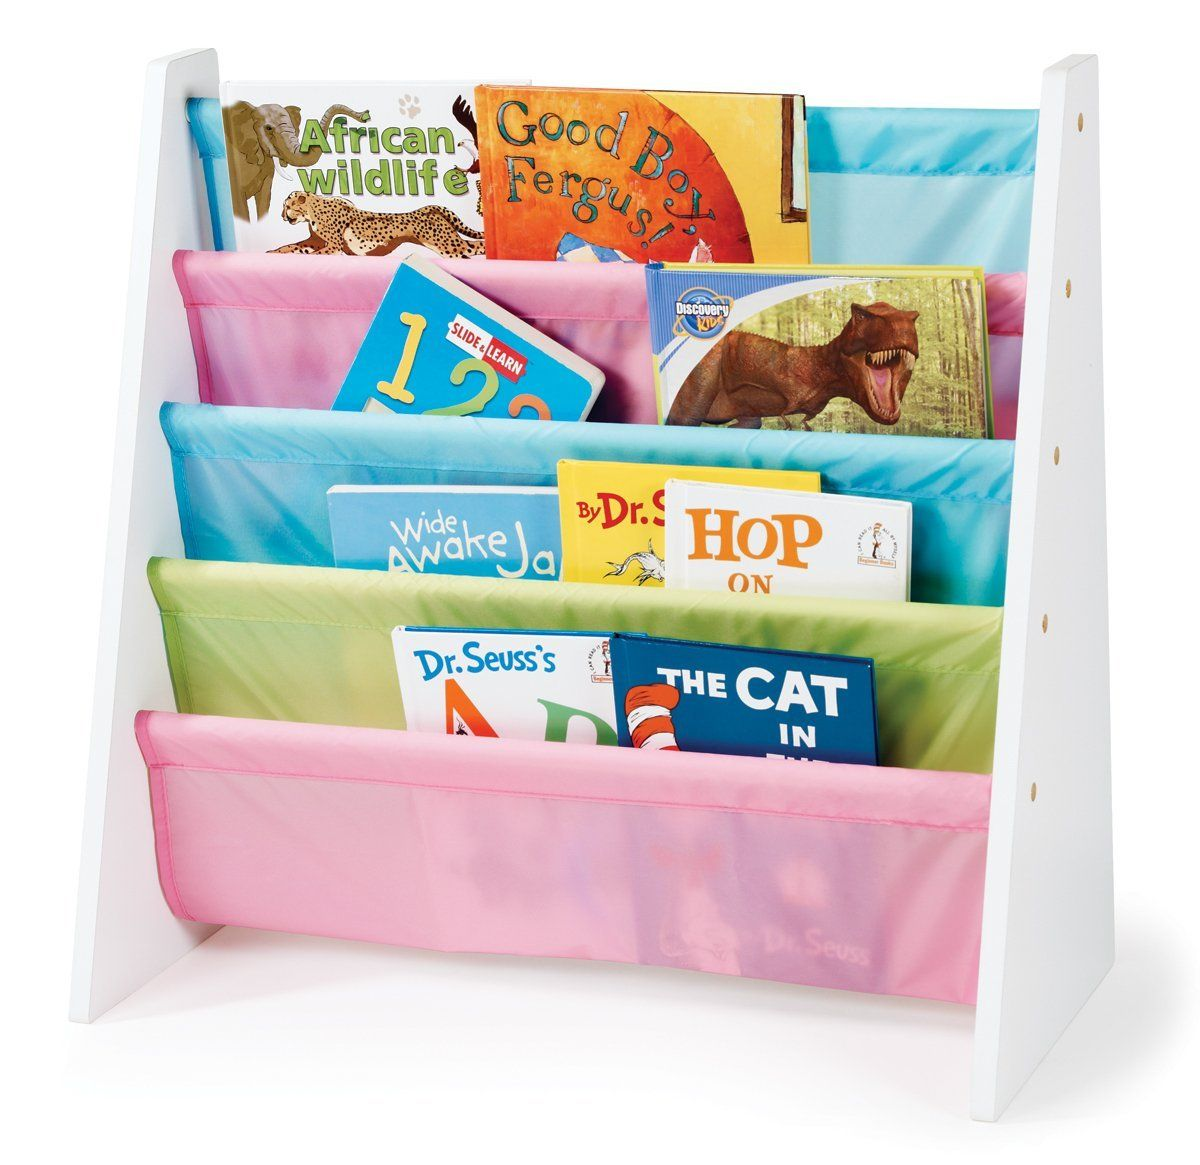 childrens bookcases and storage tot tutors wo594 pastel color book rack toddler book shelves - Color Book For Toddler